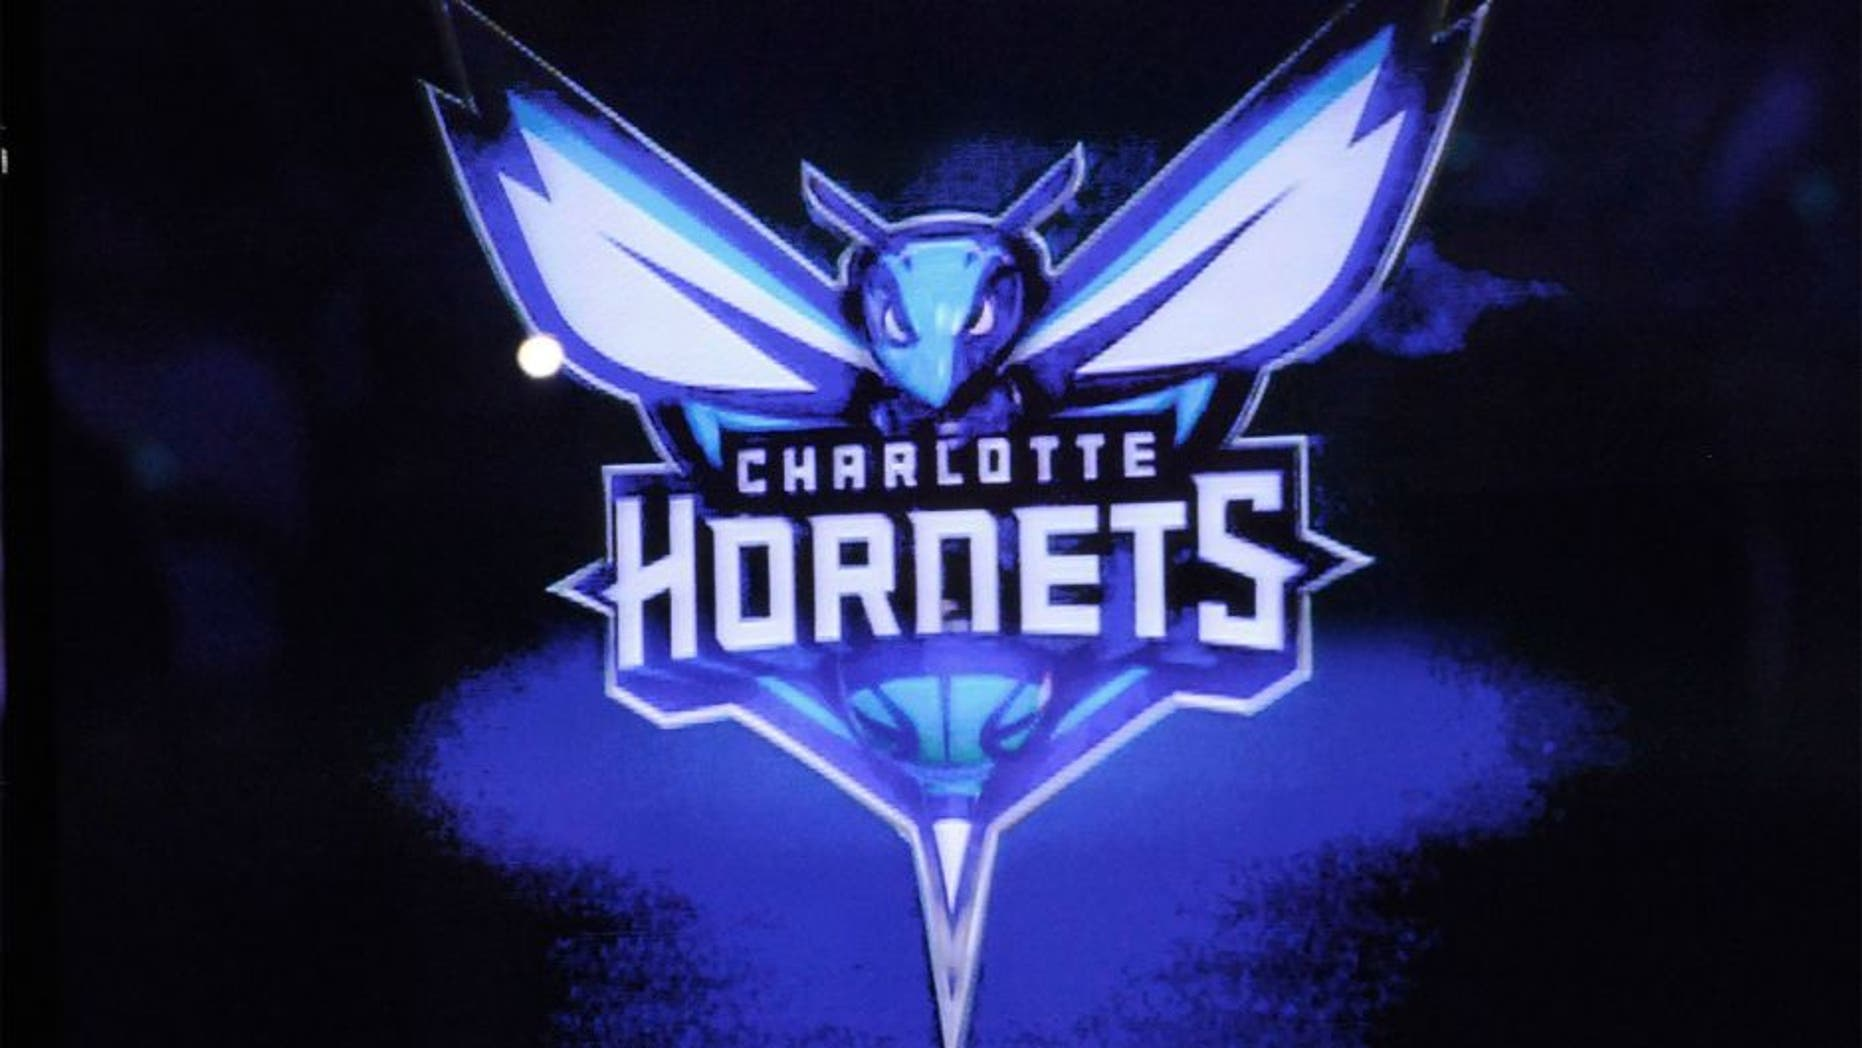 Dec 21, 2013; Charlotte, NC, USA; The Charlotte Bobcats unveil their new branding logo as the Charlotte Hornets for the 2014 season at halftime during the game against the Utah Jazz at Time Warner Cable Arena. Mandatory Credit: Sam Sharpe-USA TODAY Sports